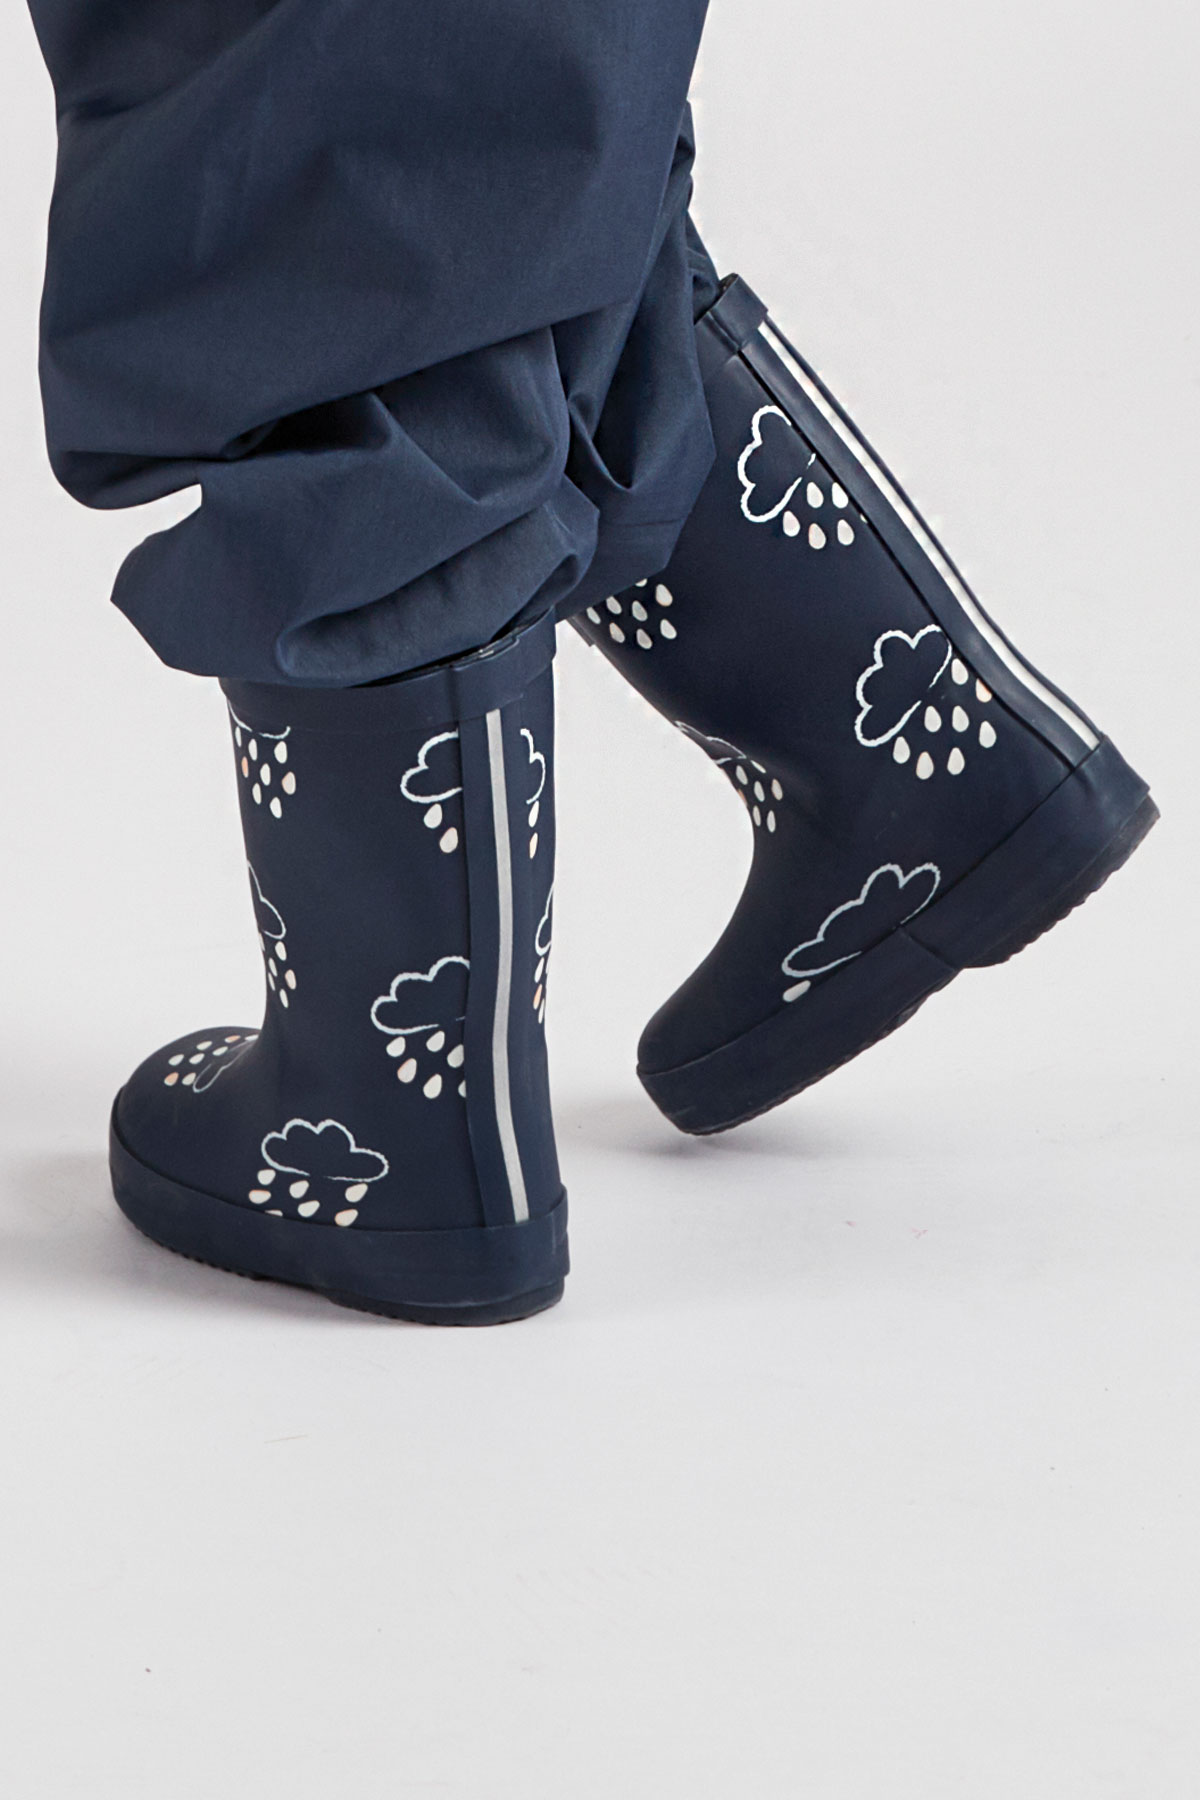 infant colour-revealing navy wellies side view (1200x1800)